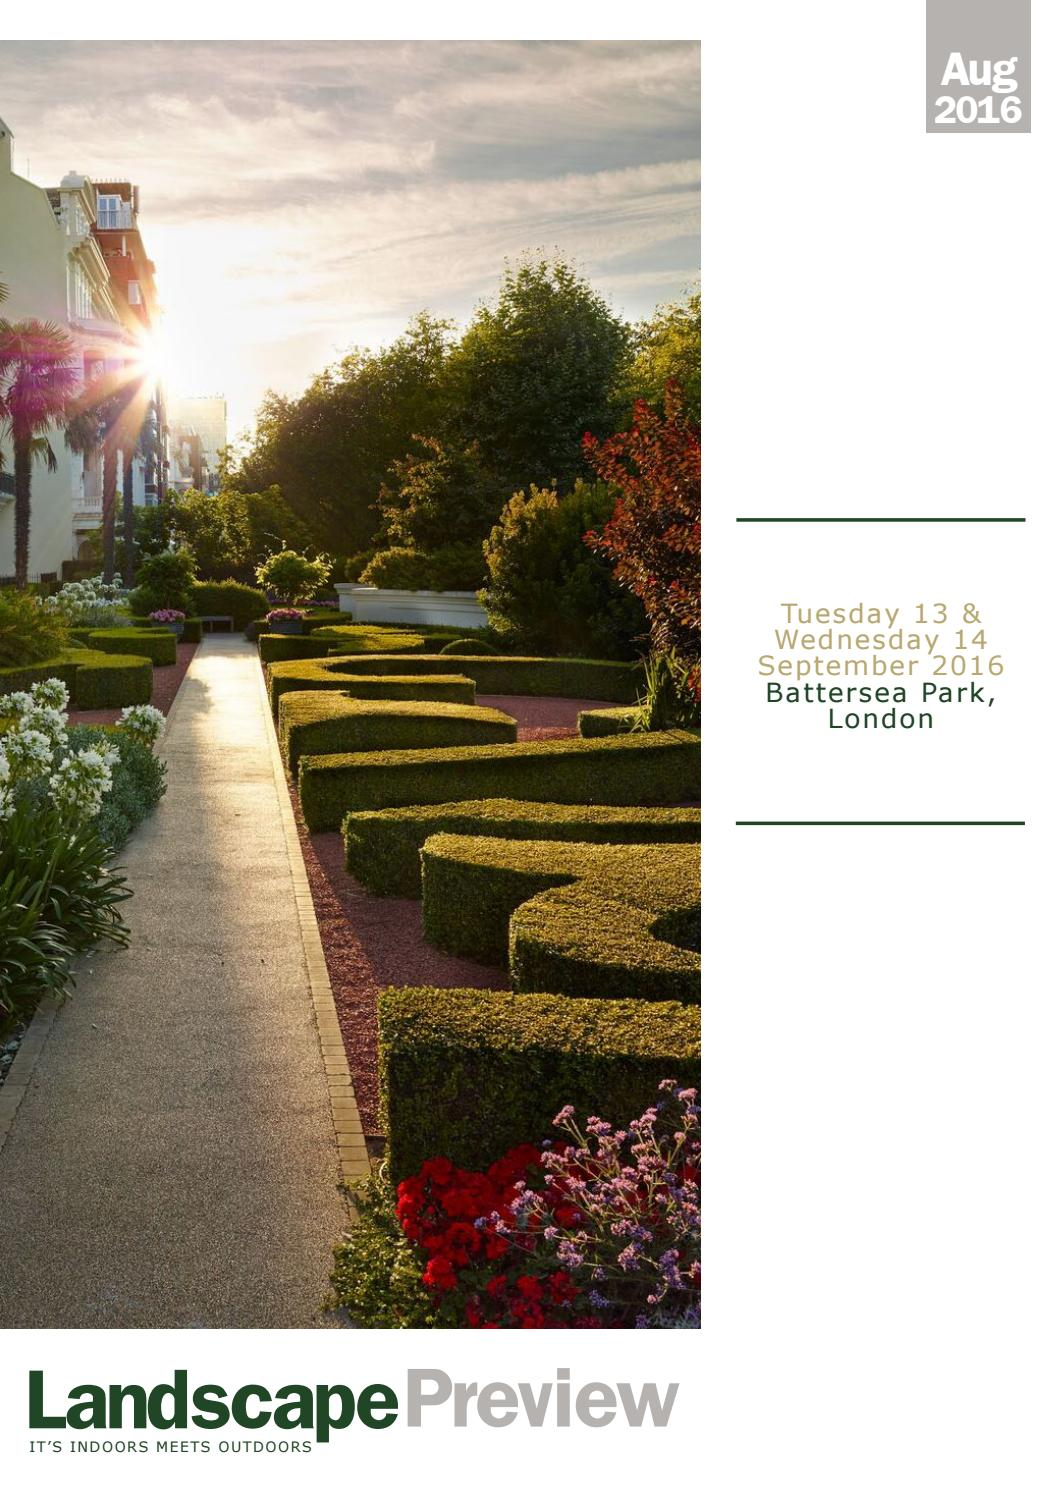 LANDSCAPE Preview August 2016 by LANDSCAPE Show - issuu